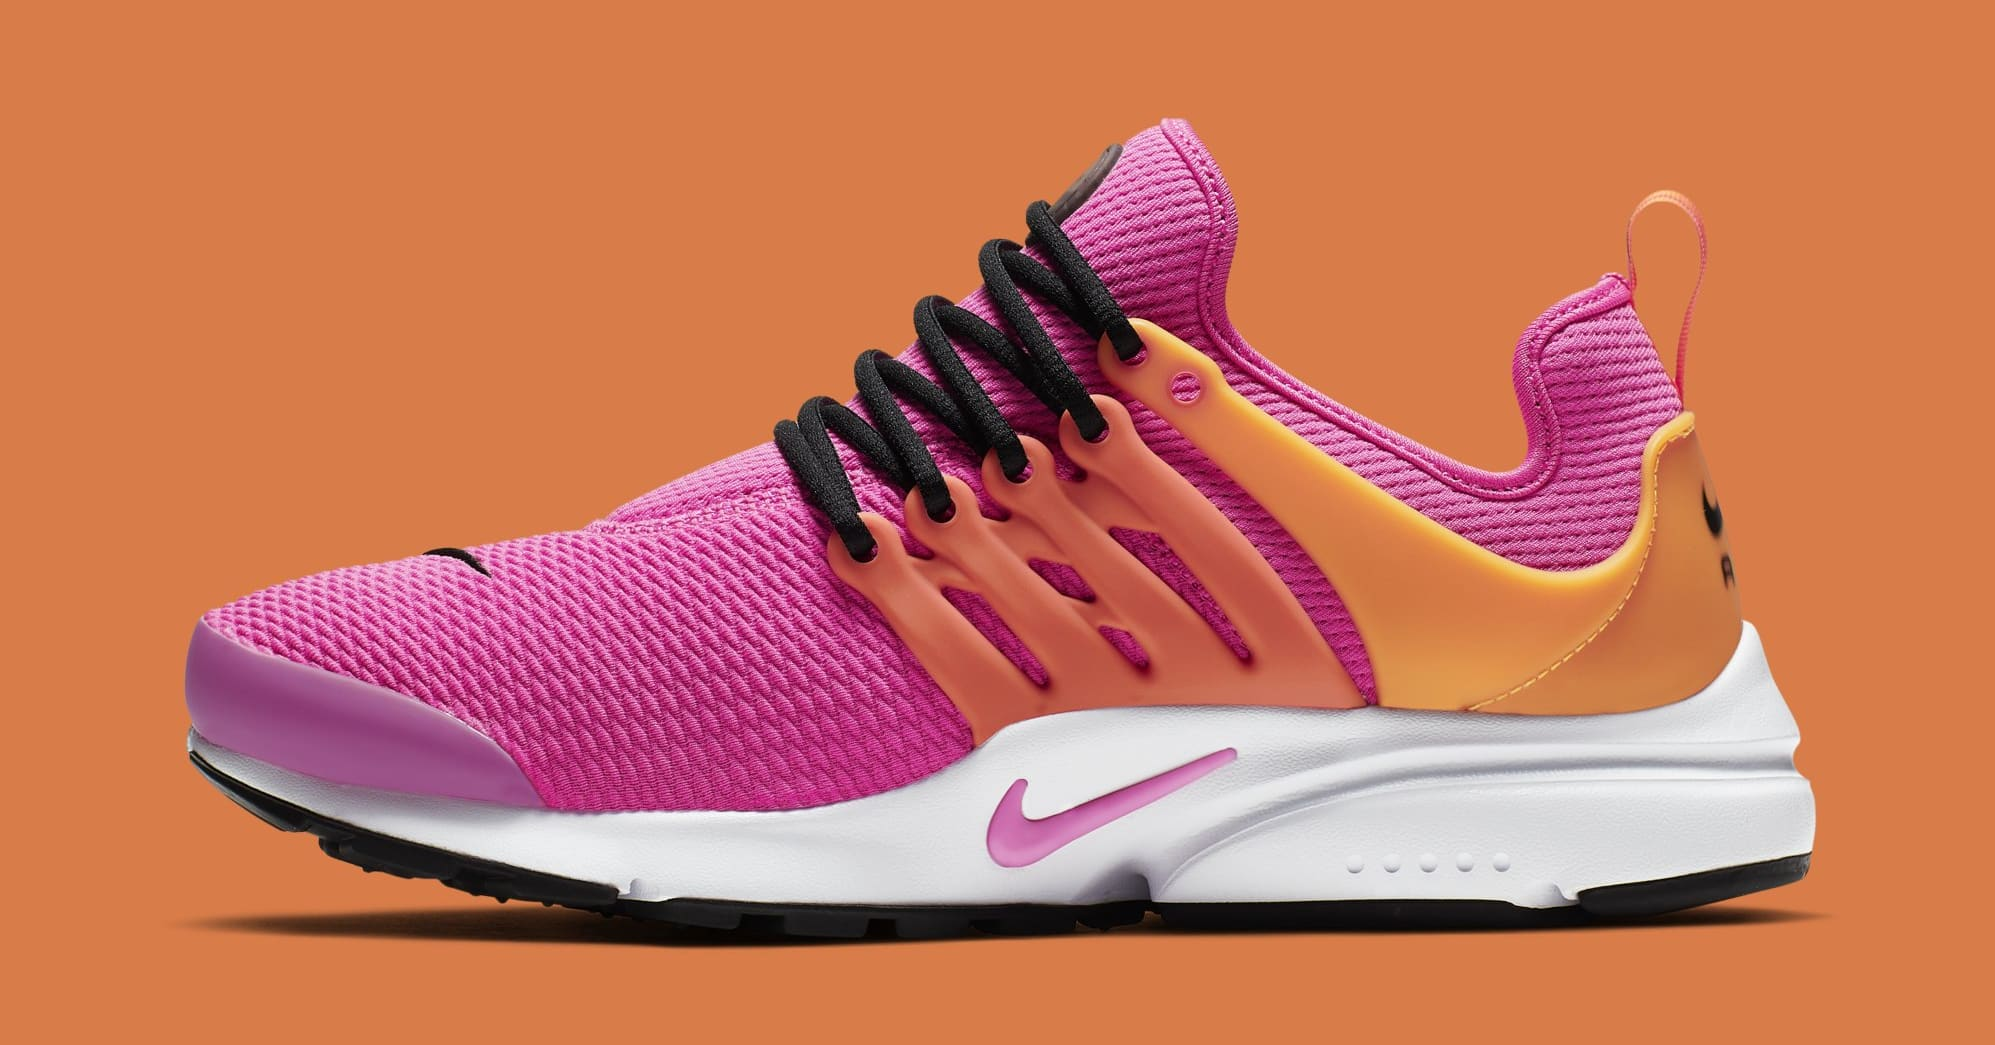 check out 1c604 1f1df WMNS Nike Air Presto  Laser Fuchsia  878068-607 (Lateral)